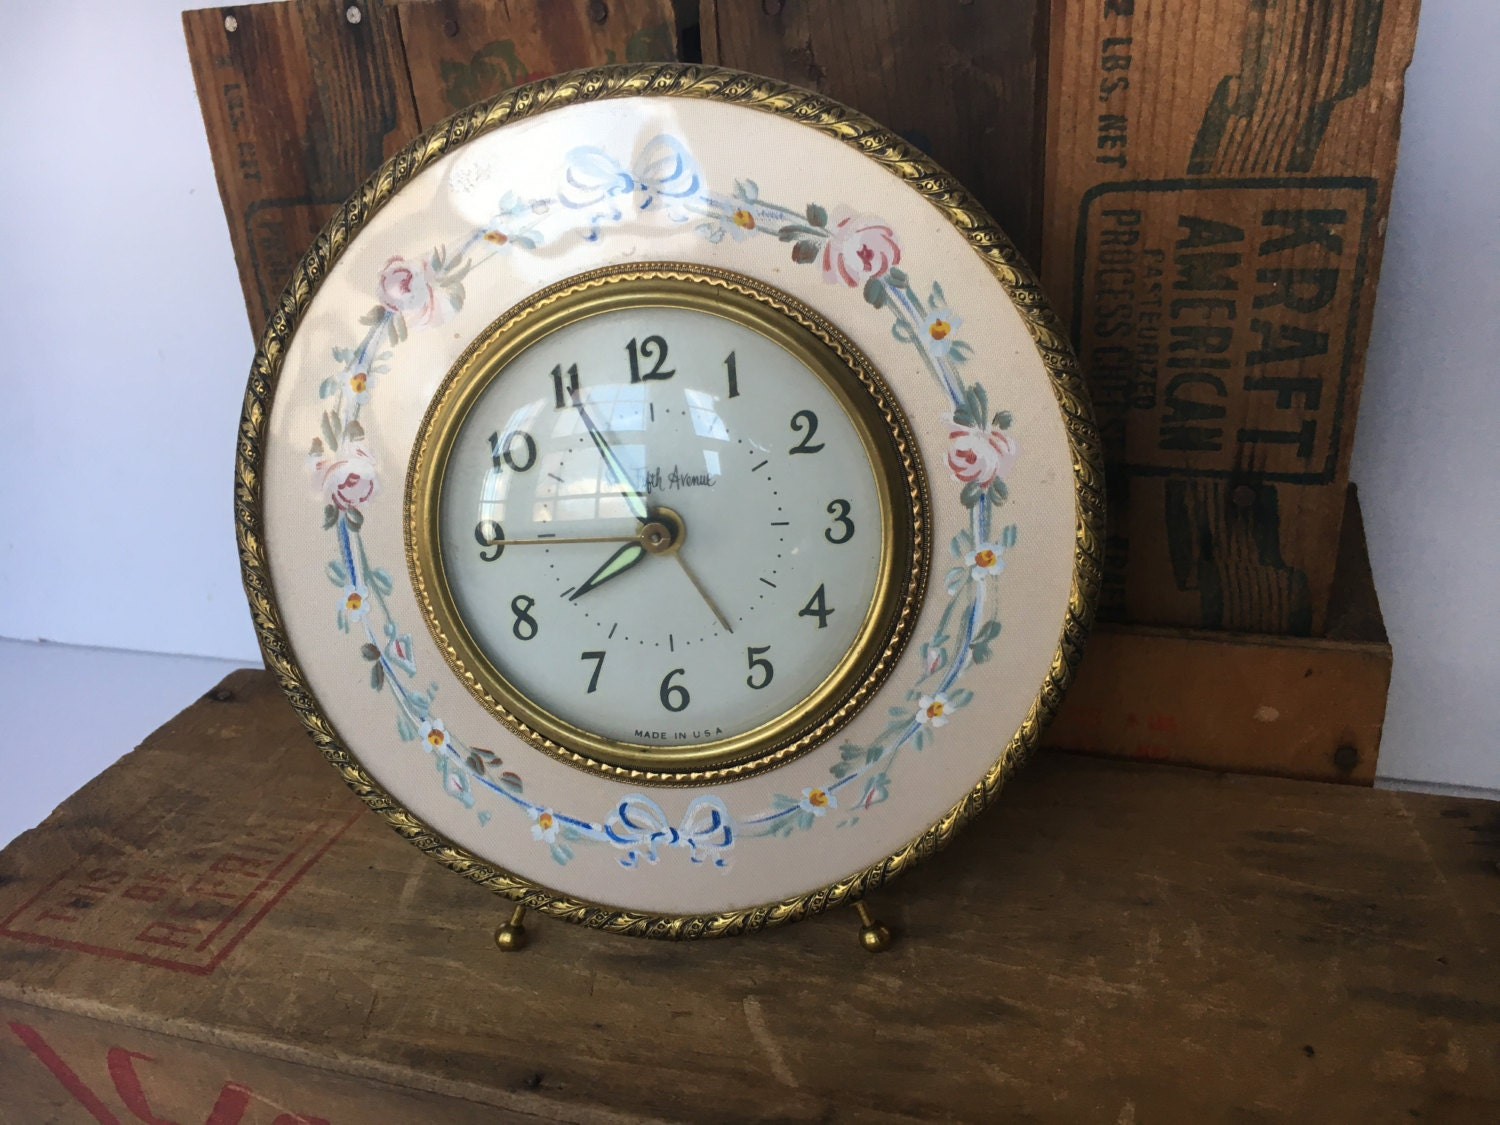 Vintage Alarm Clock Saks Fifth Avenue Hand-Painted Floral ...